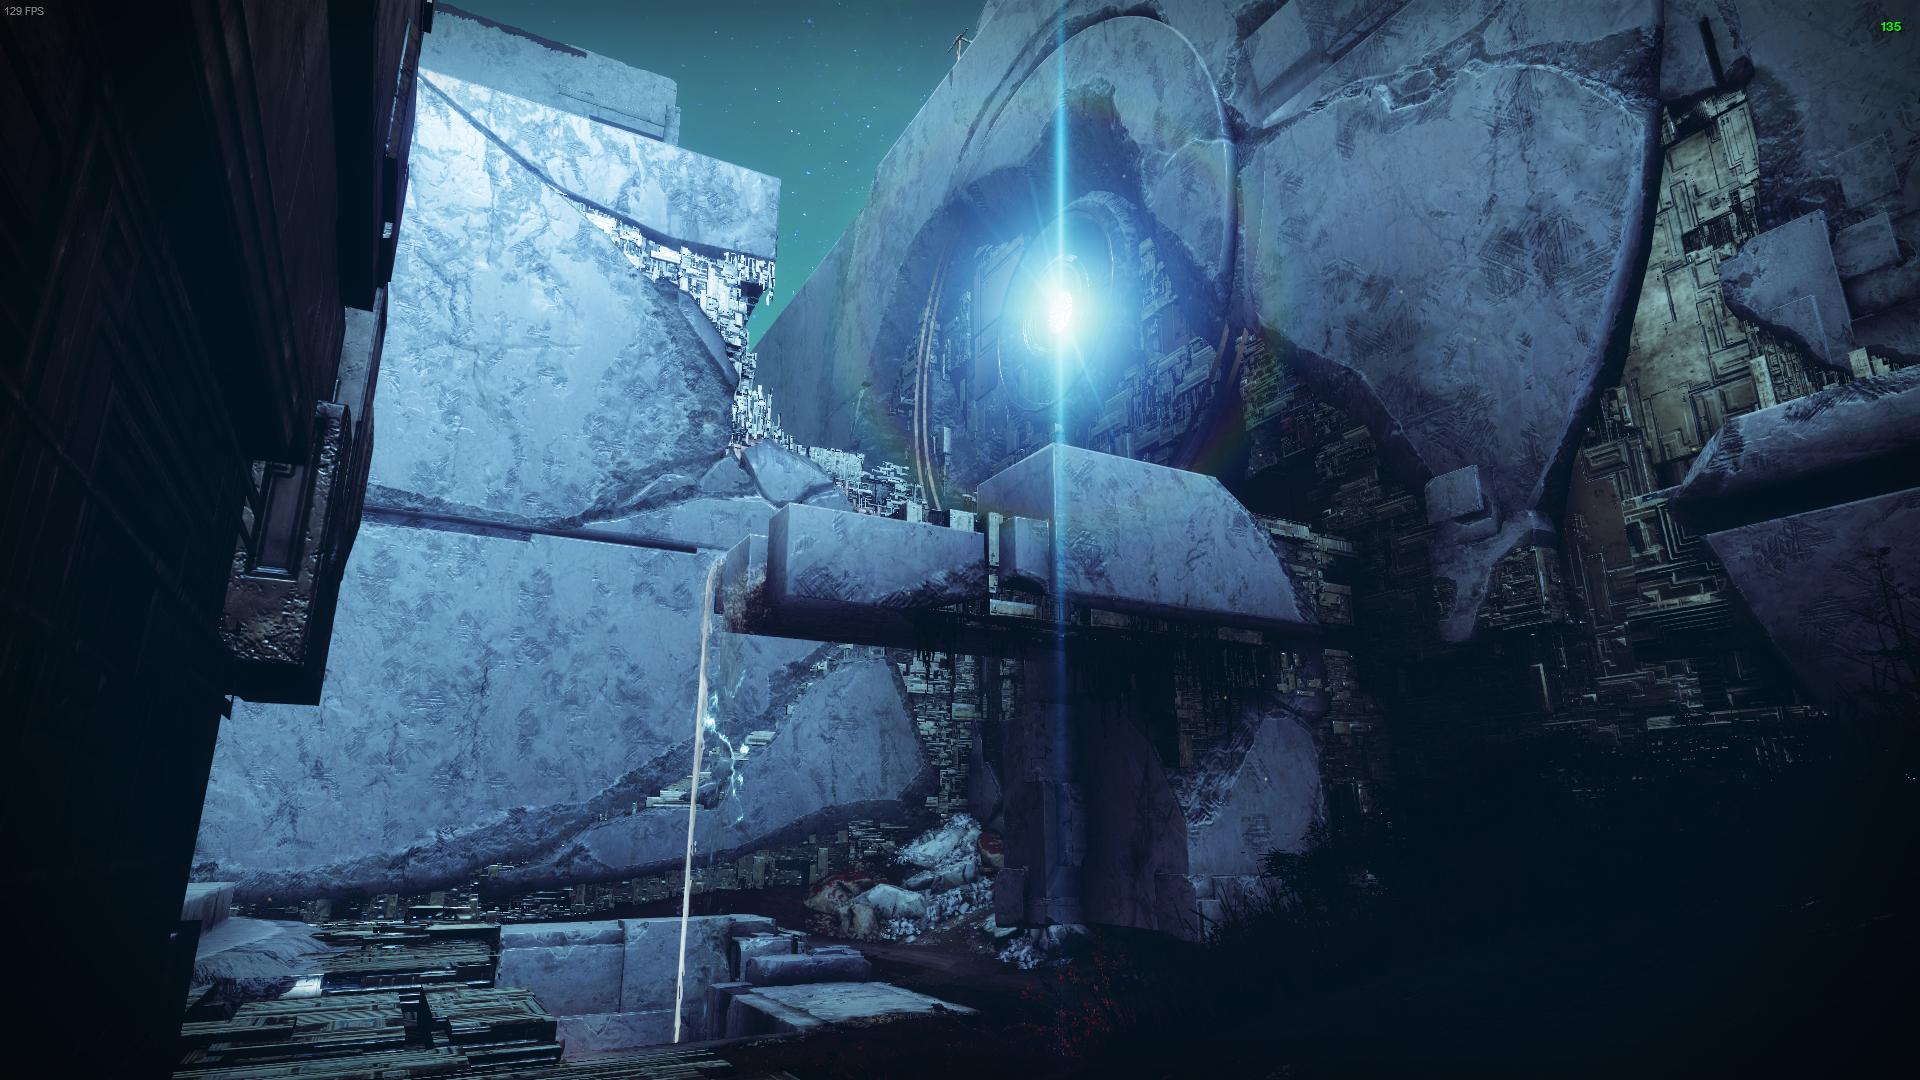 The smaller Vex waterfall near the spawn point on Nessus. A bright blue light shines from a broken circle on the wall.